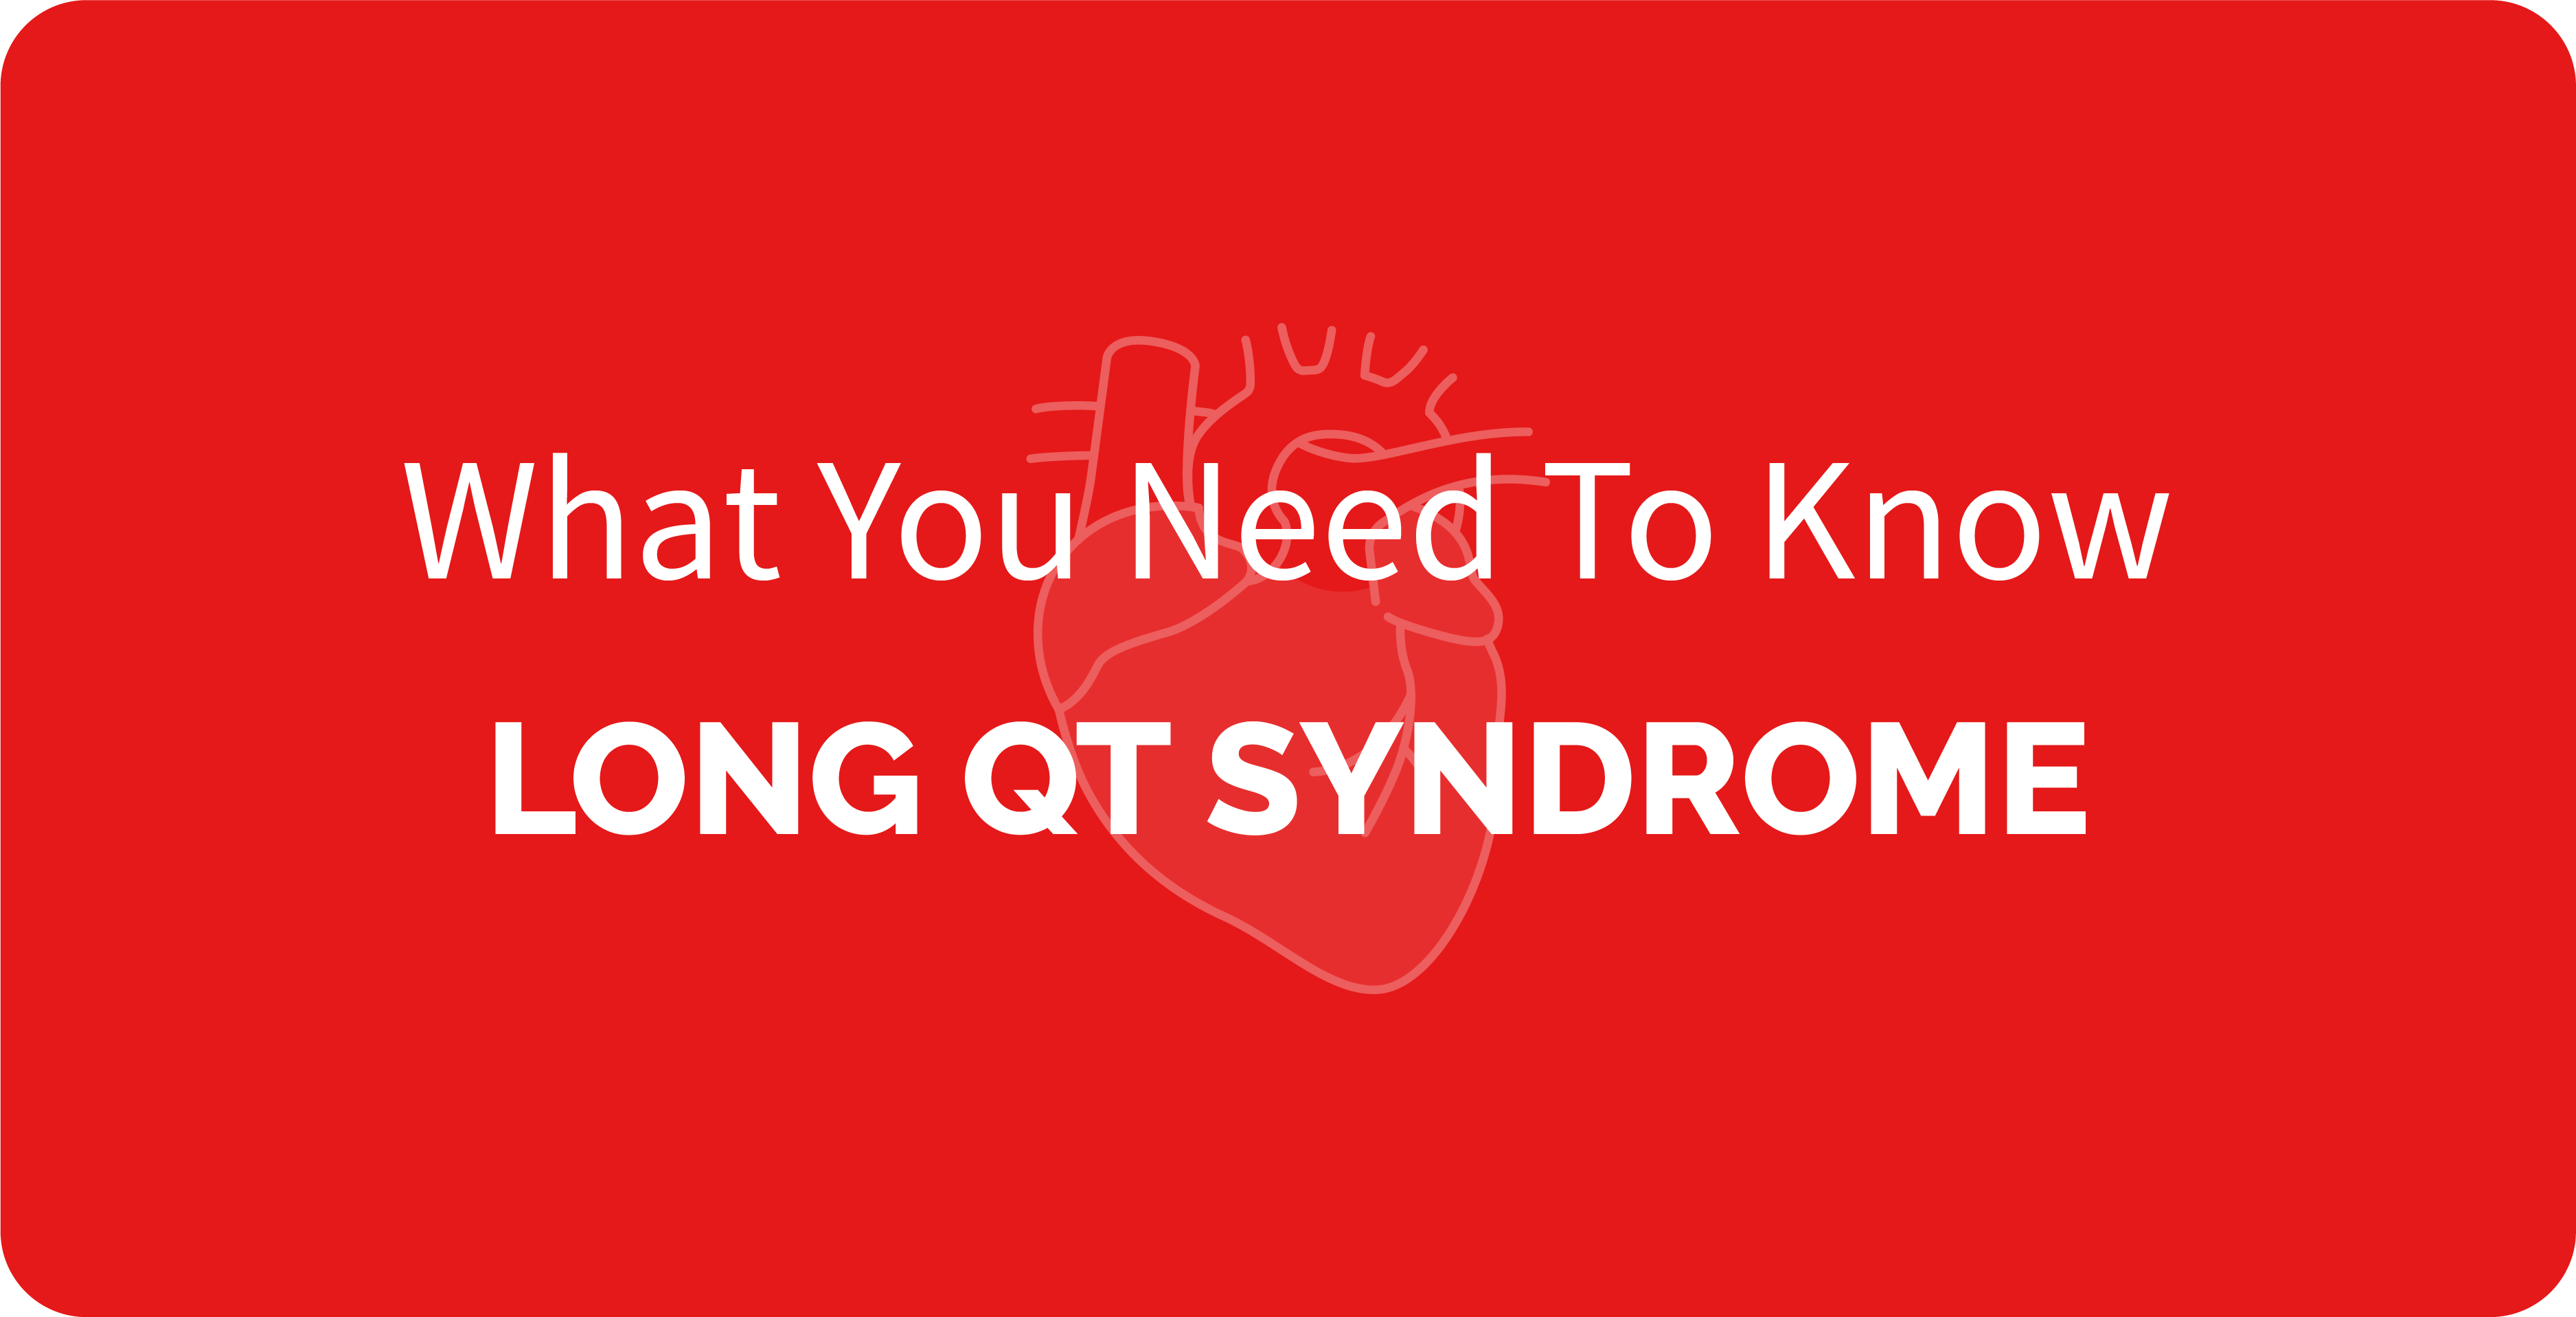 The cover of 'Rare Disease Series #18 Long QT syndrome'